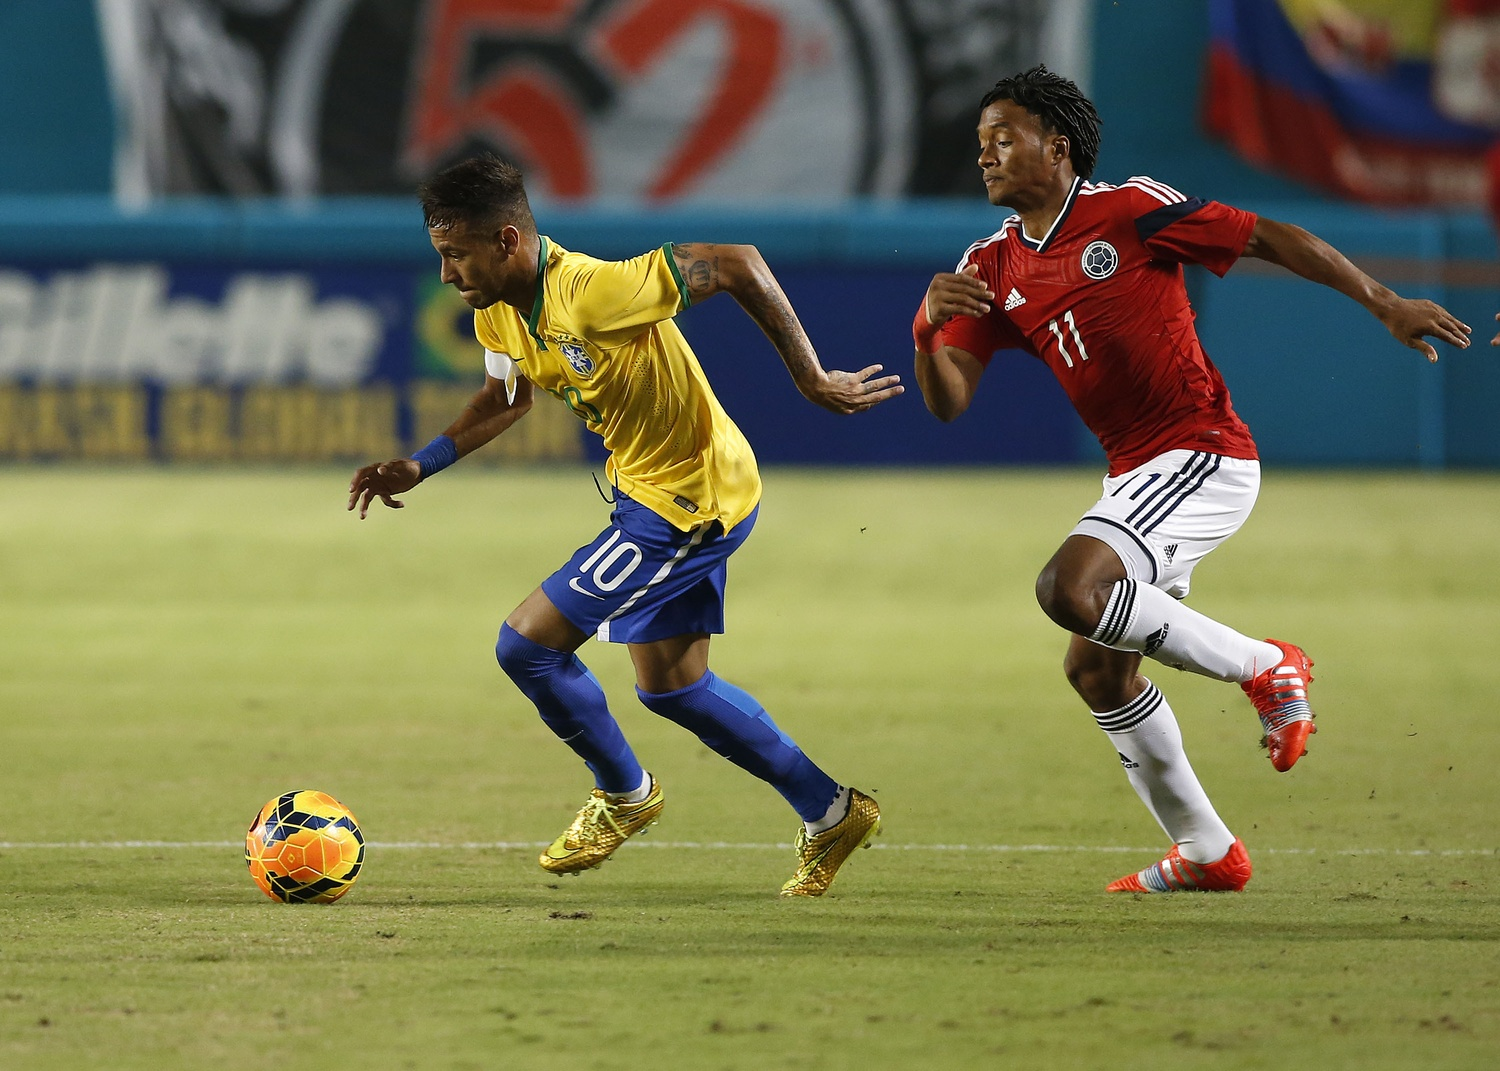 ... : Brazil vs Colombia TV times and open thread - World Soccer Talk